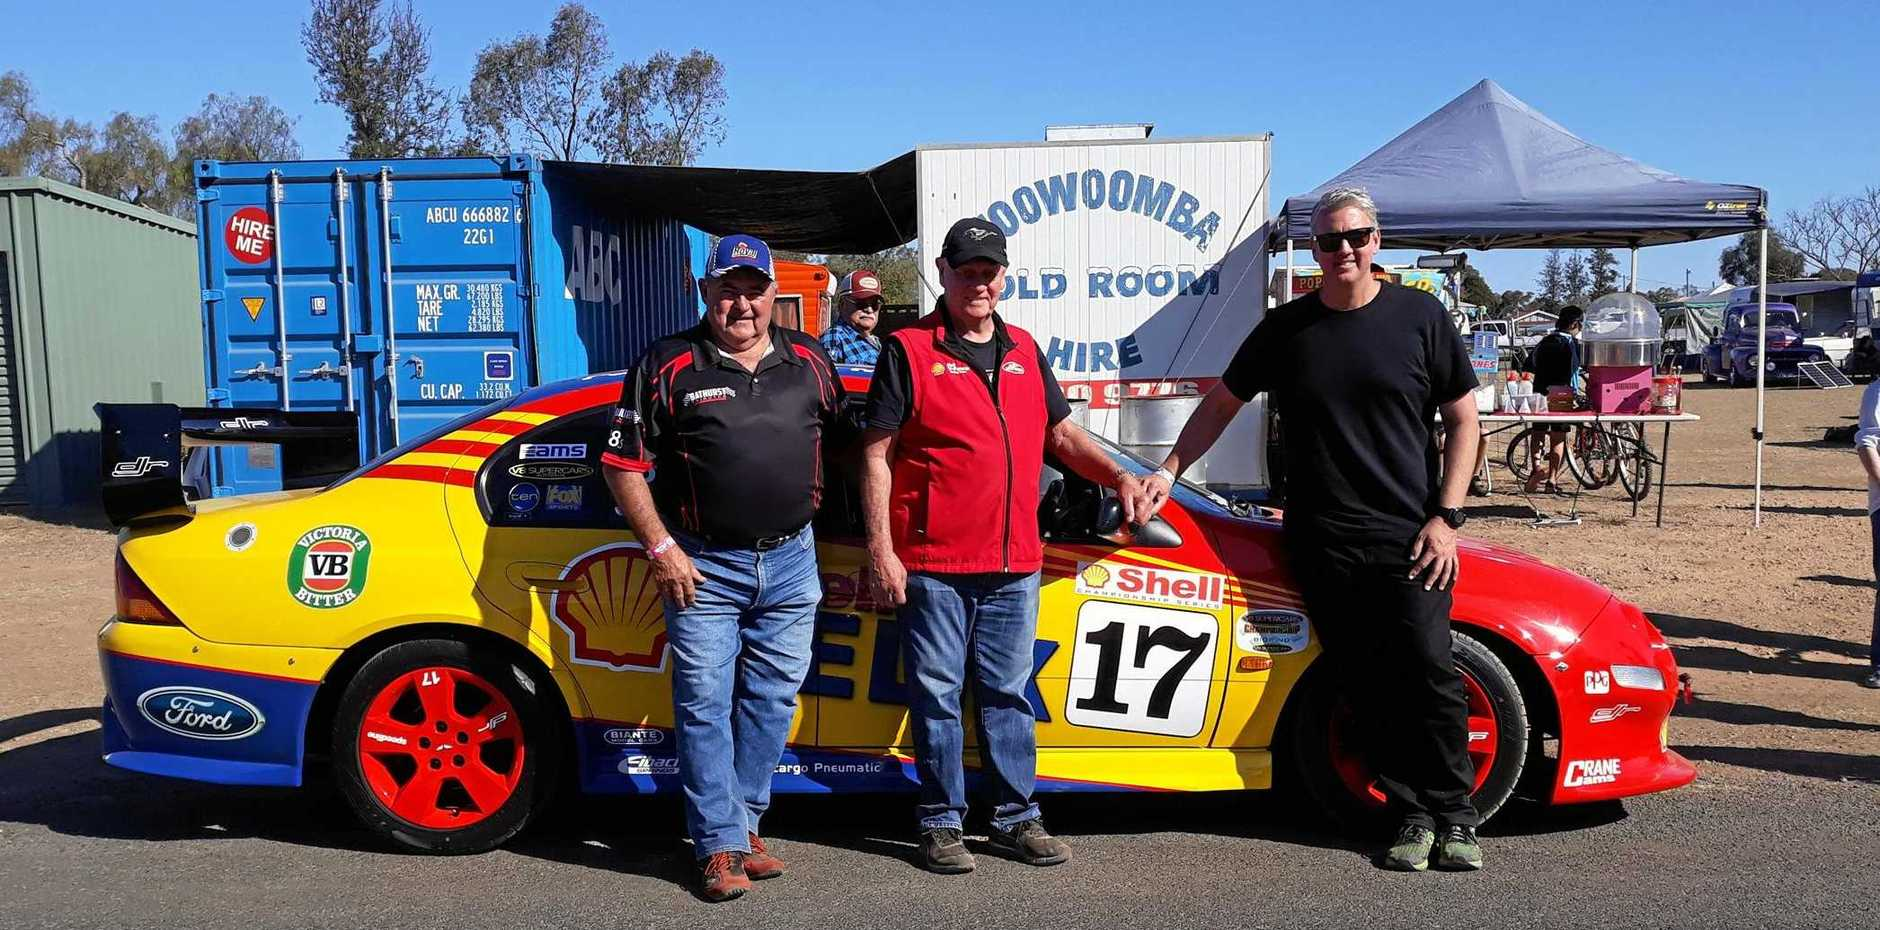 FAST CARS: Keith Edwards, of Withcott, with legend Dick Johnson and son Steve Johnson, in front of Keith's replica car.